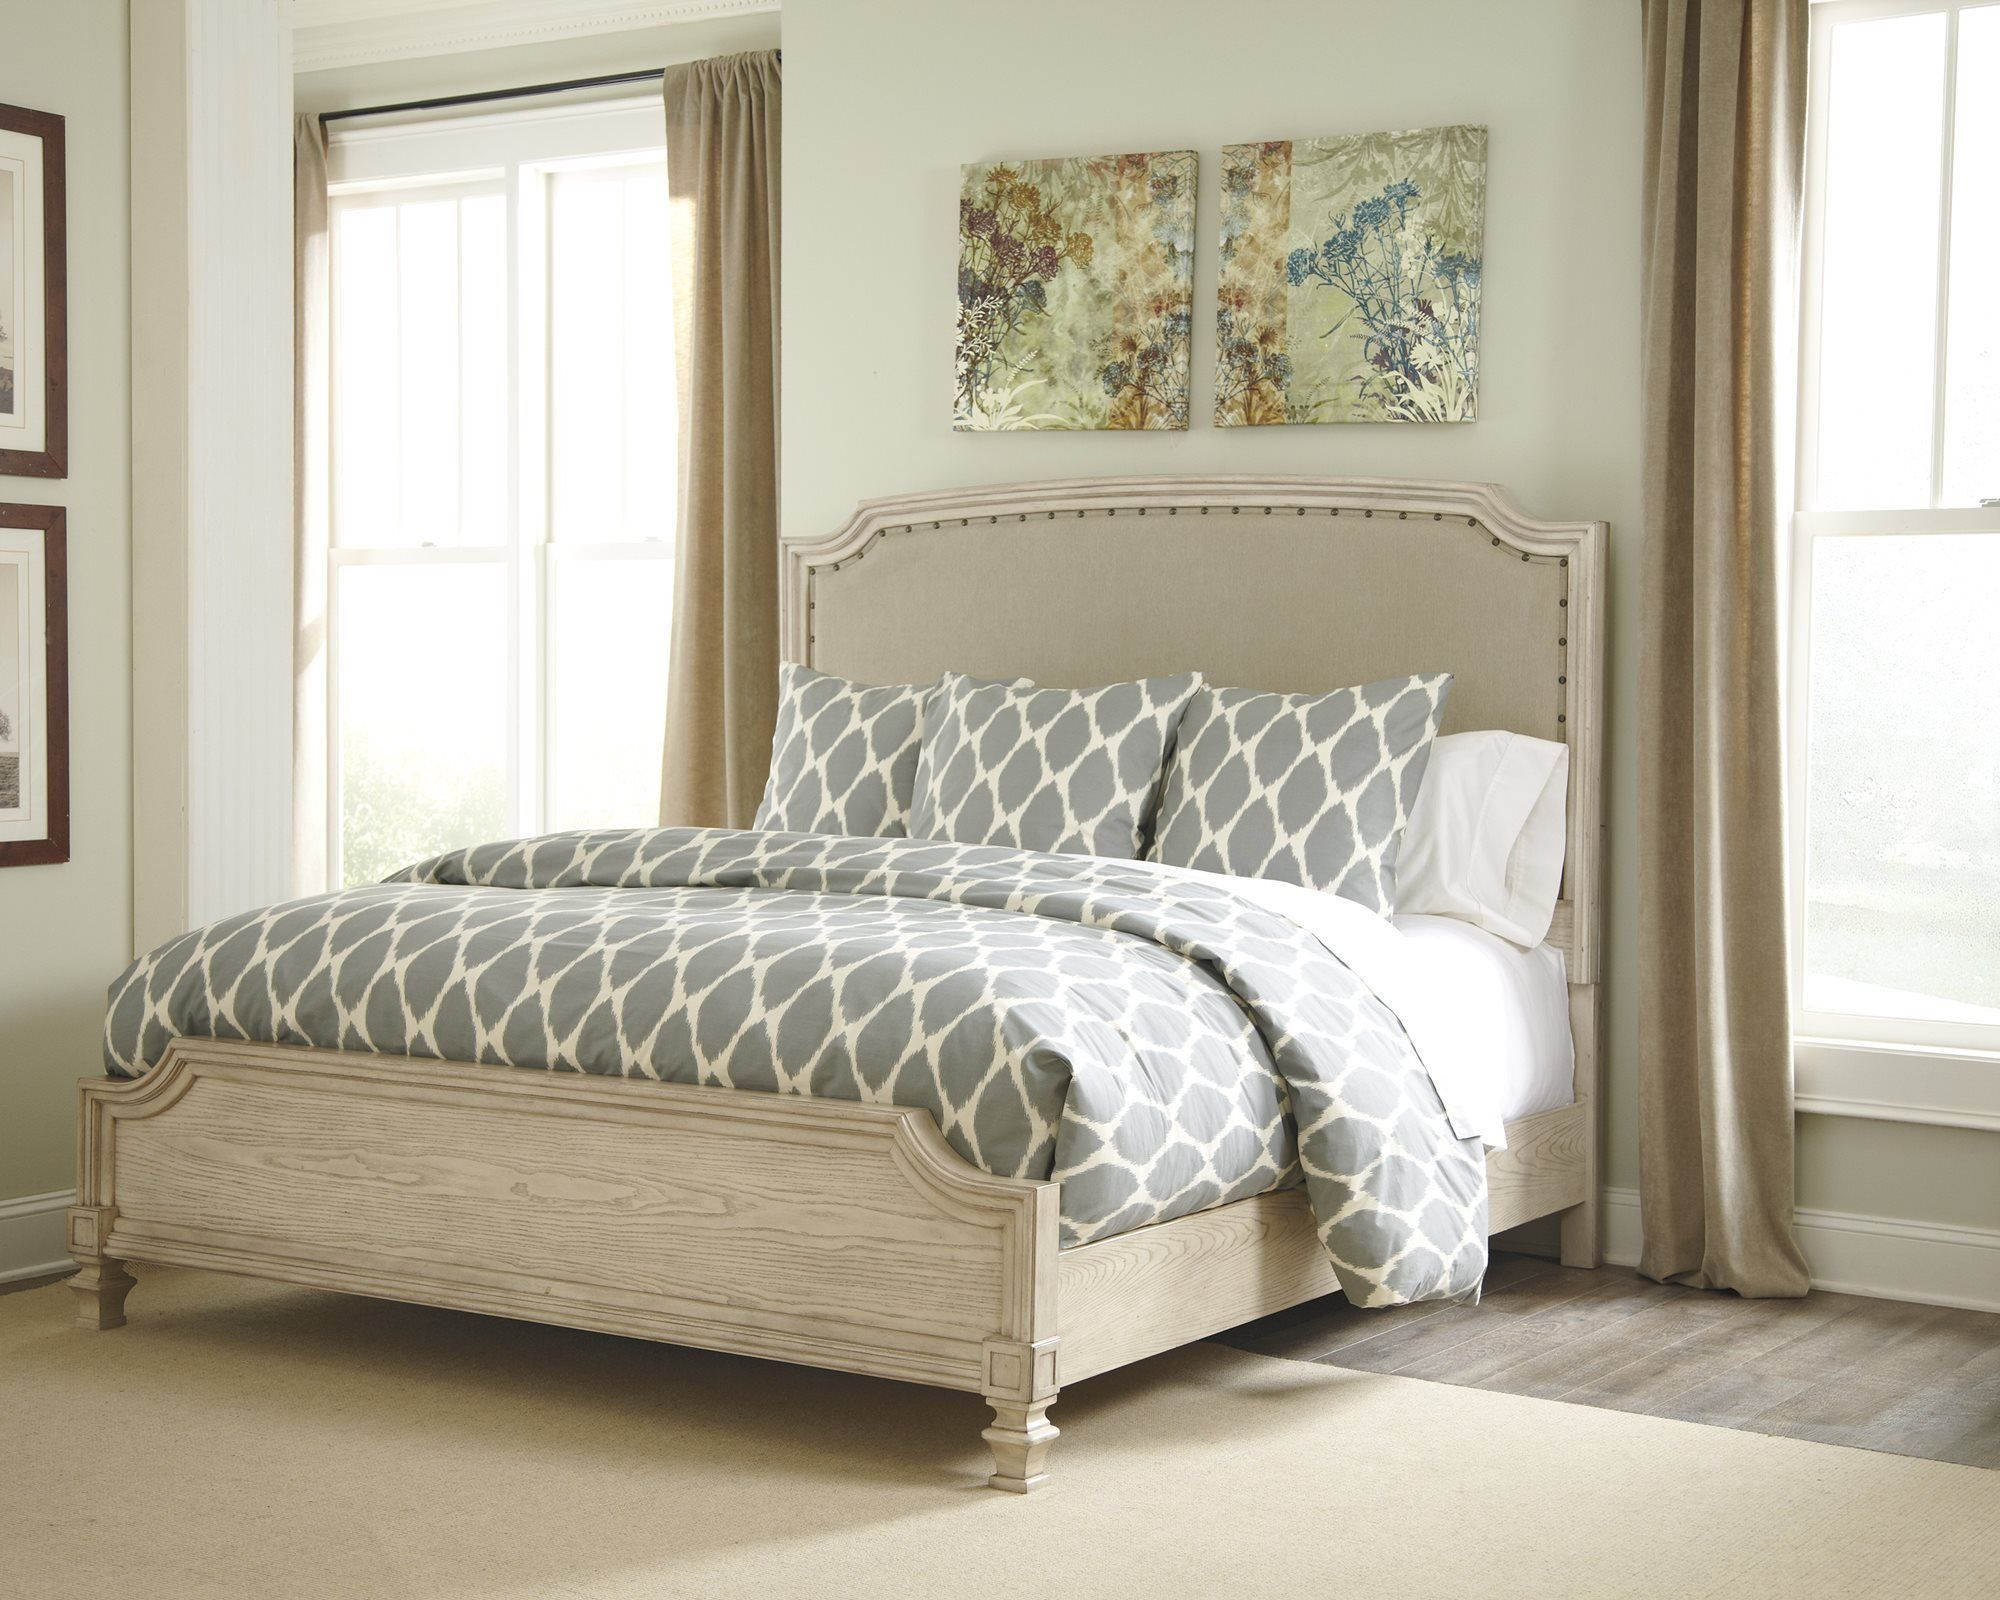 ashley demarlos queen upholstered bed in parchment white you can